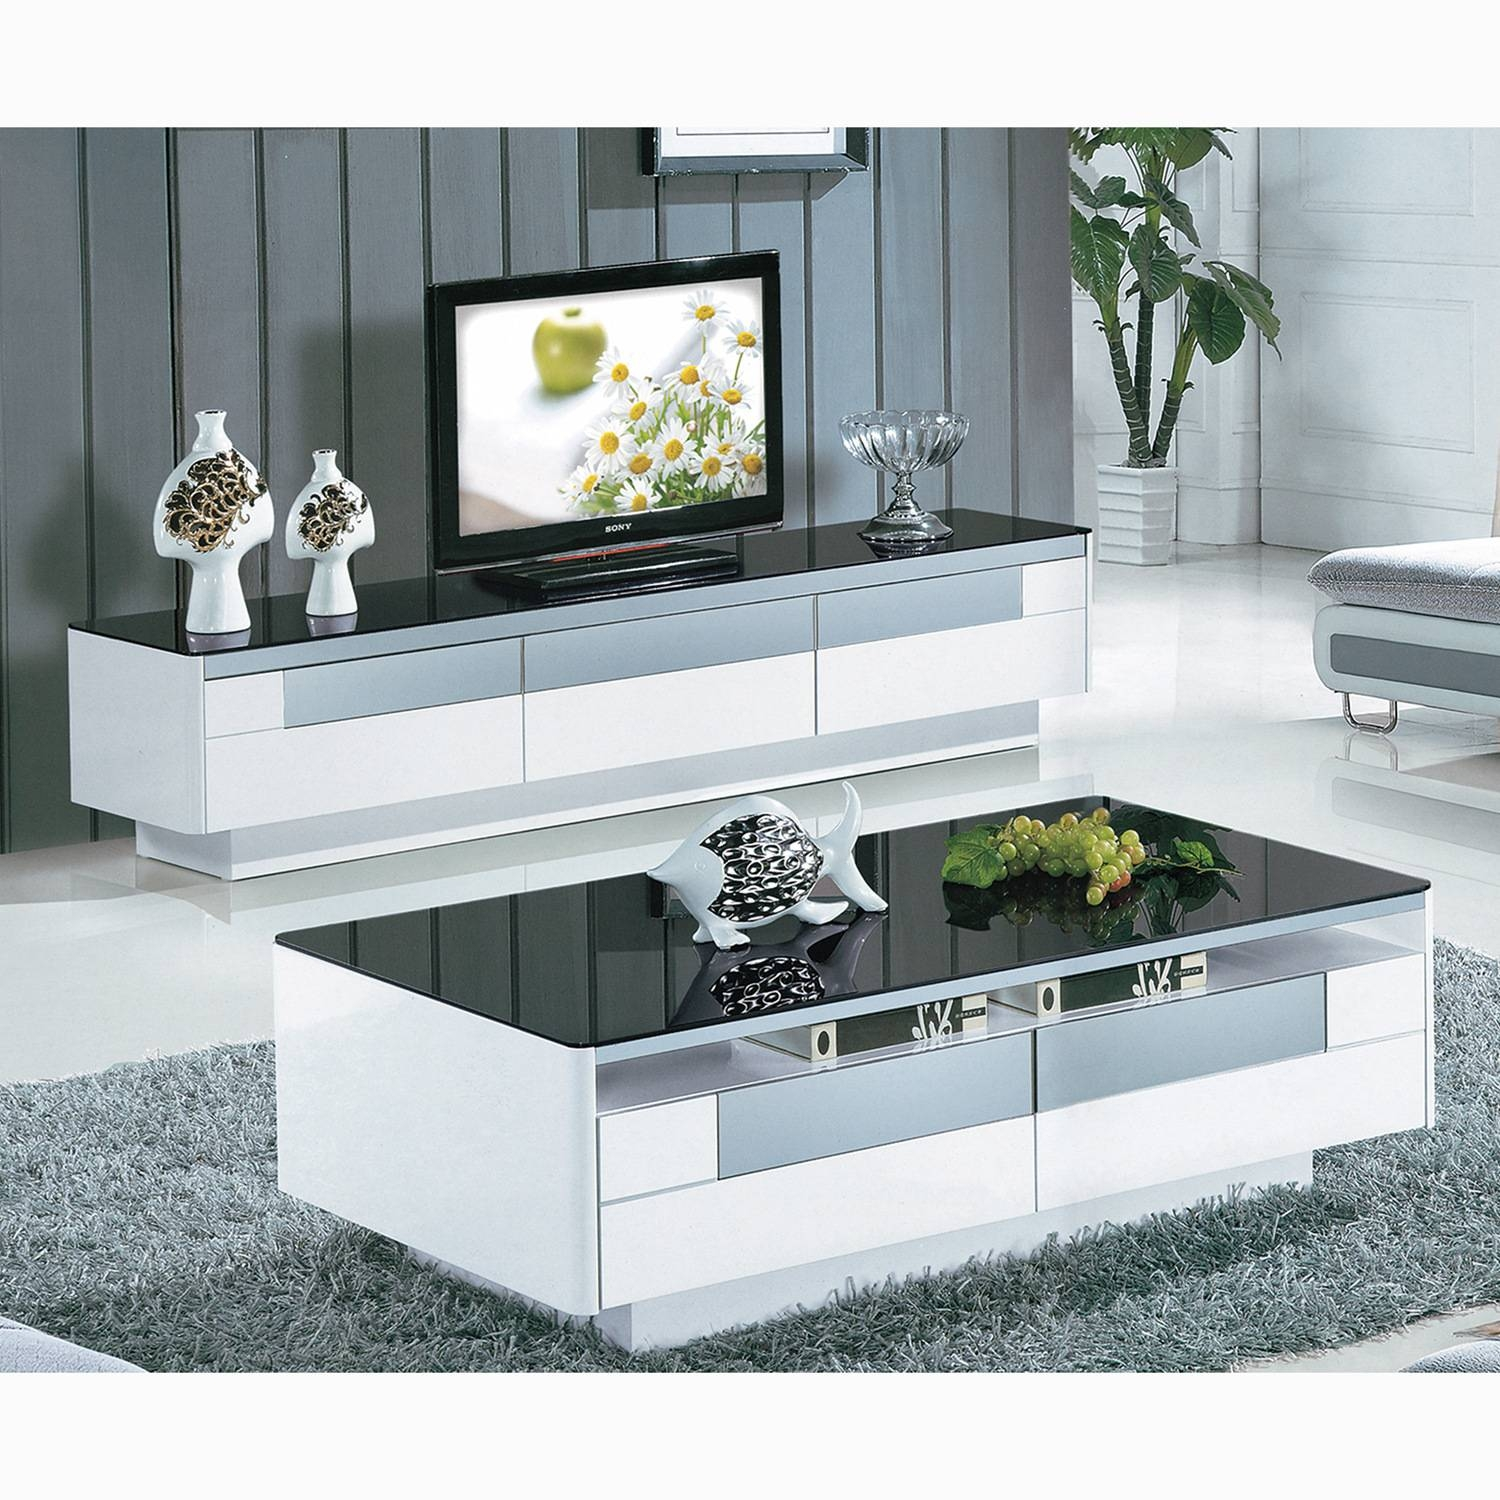 Displaying Gallery of Tv Cabinet and Coffee Table Sets View 5 of